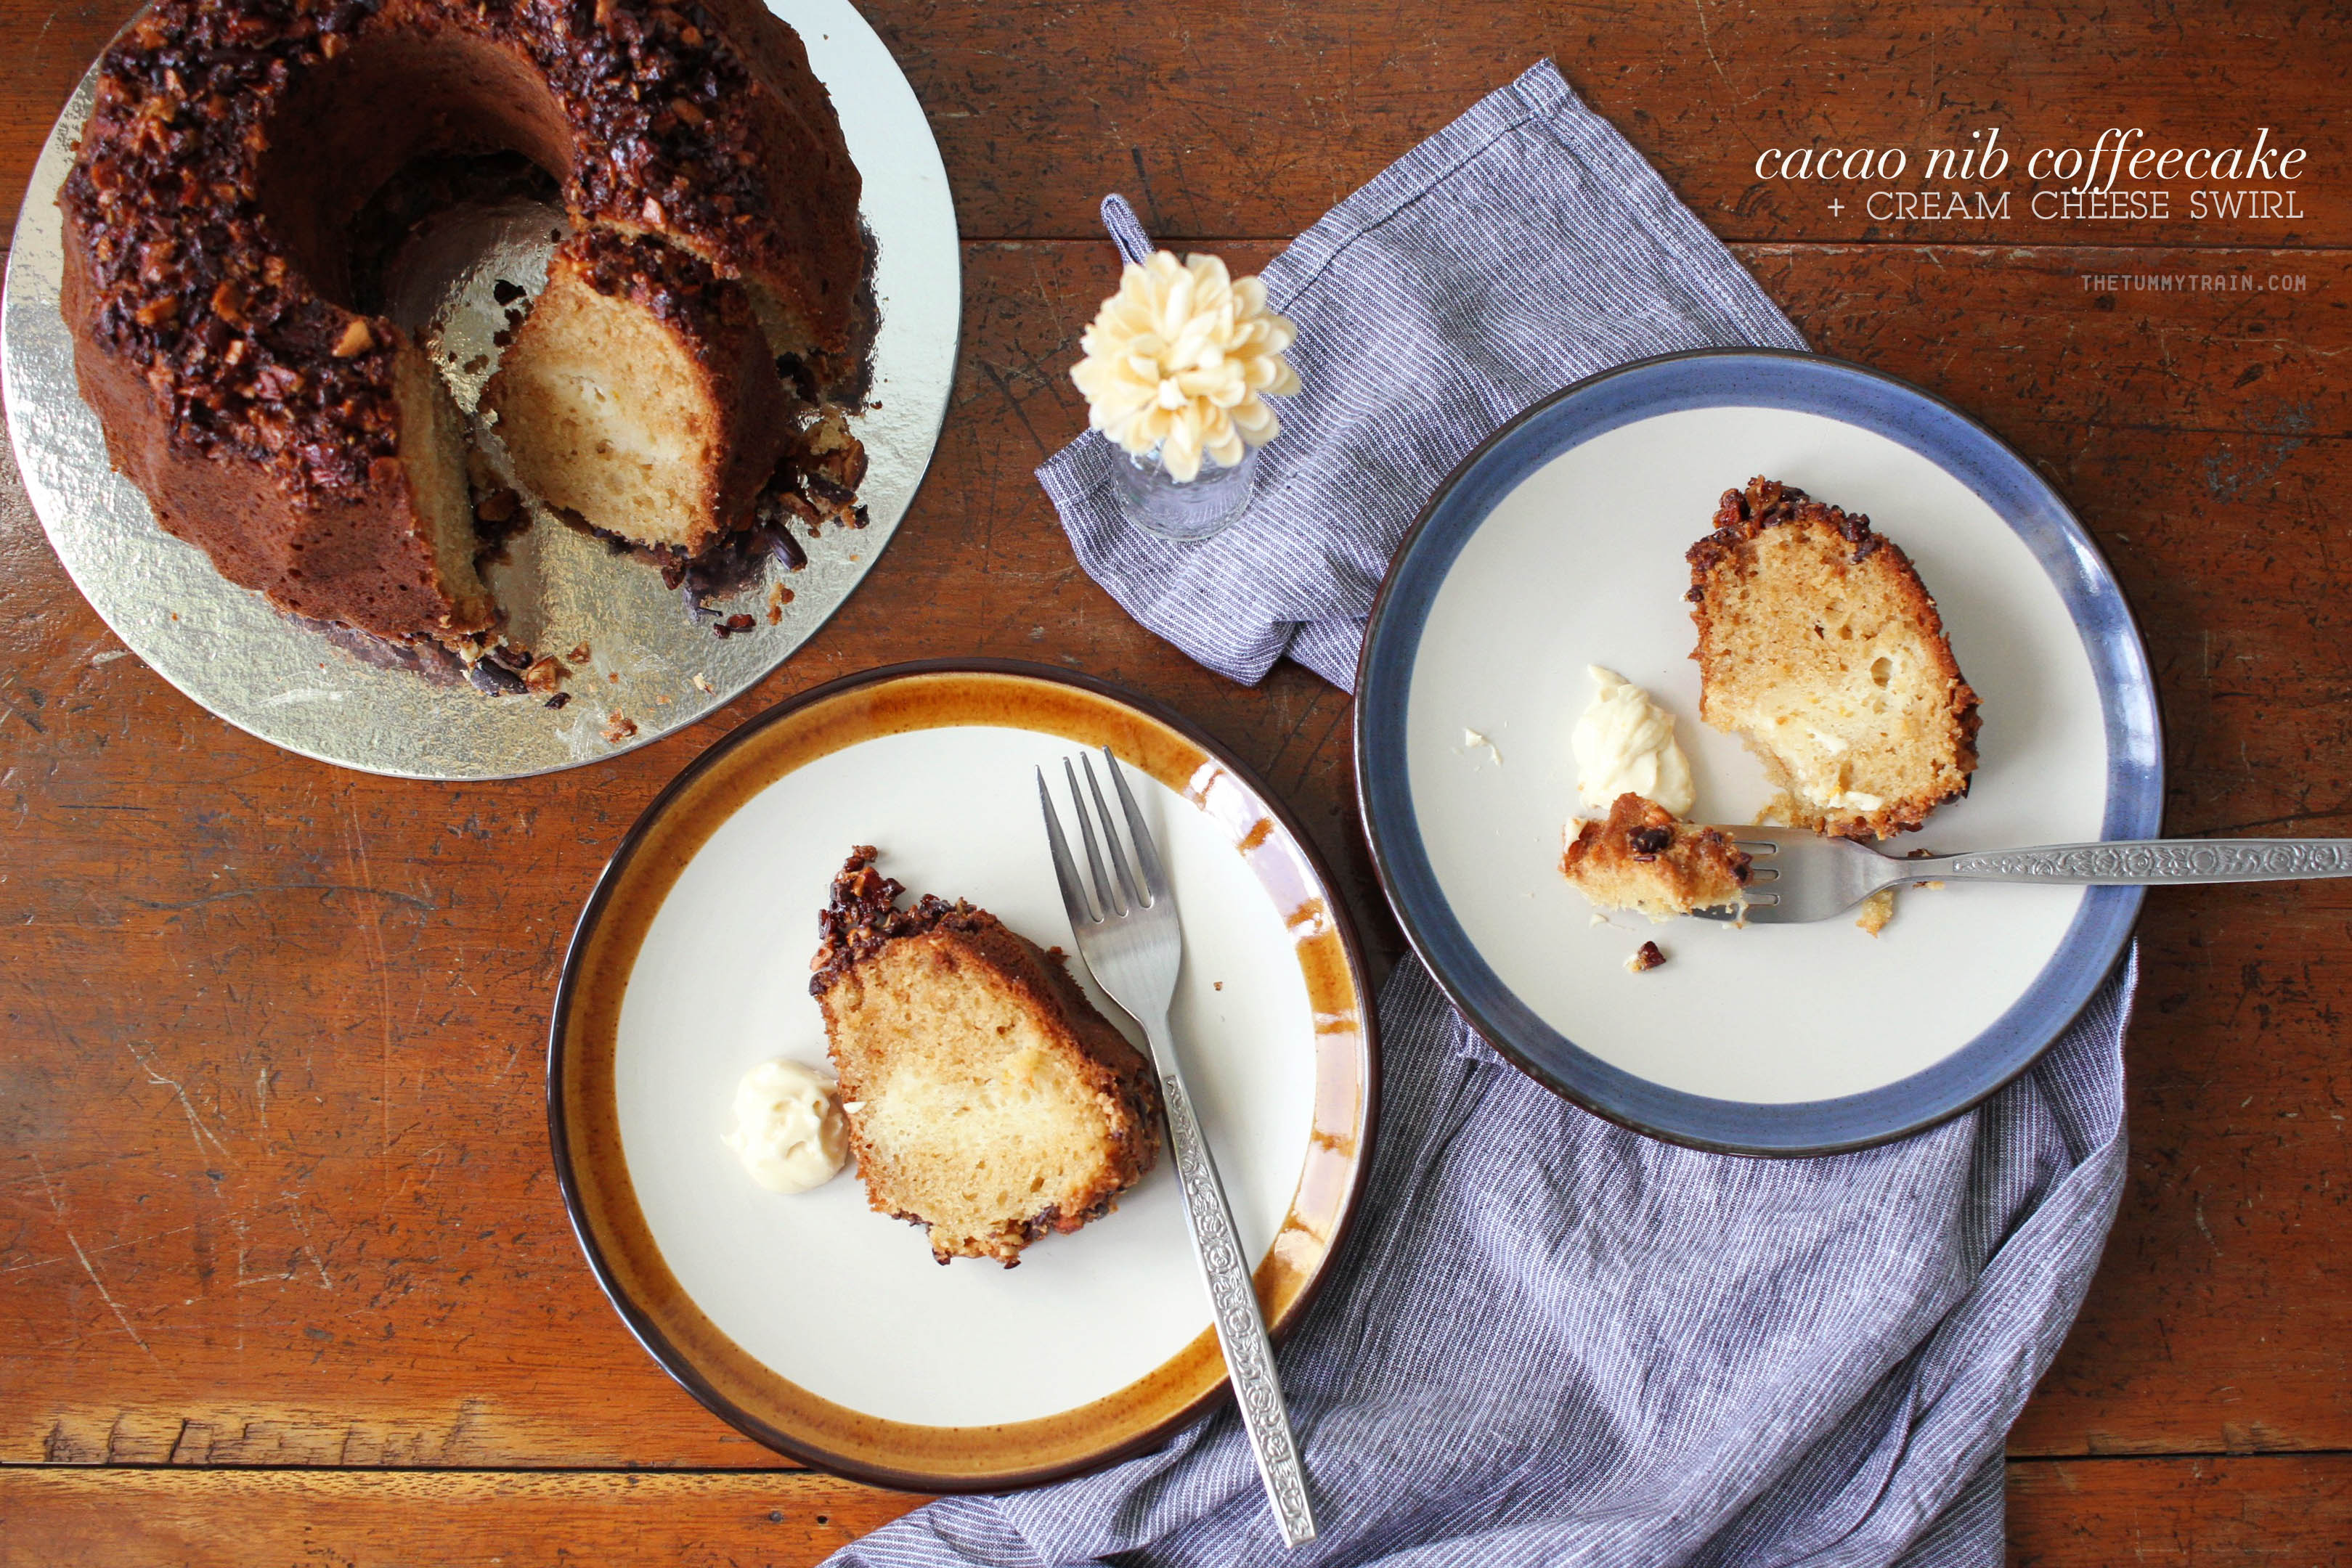 Cacao Nib Coffeecake 1 - A first encounter leading to this Cacao Nib Coffeecake [VIDEO]